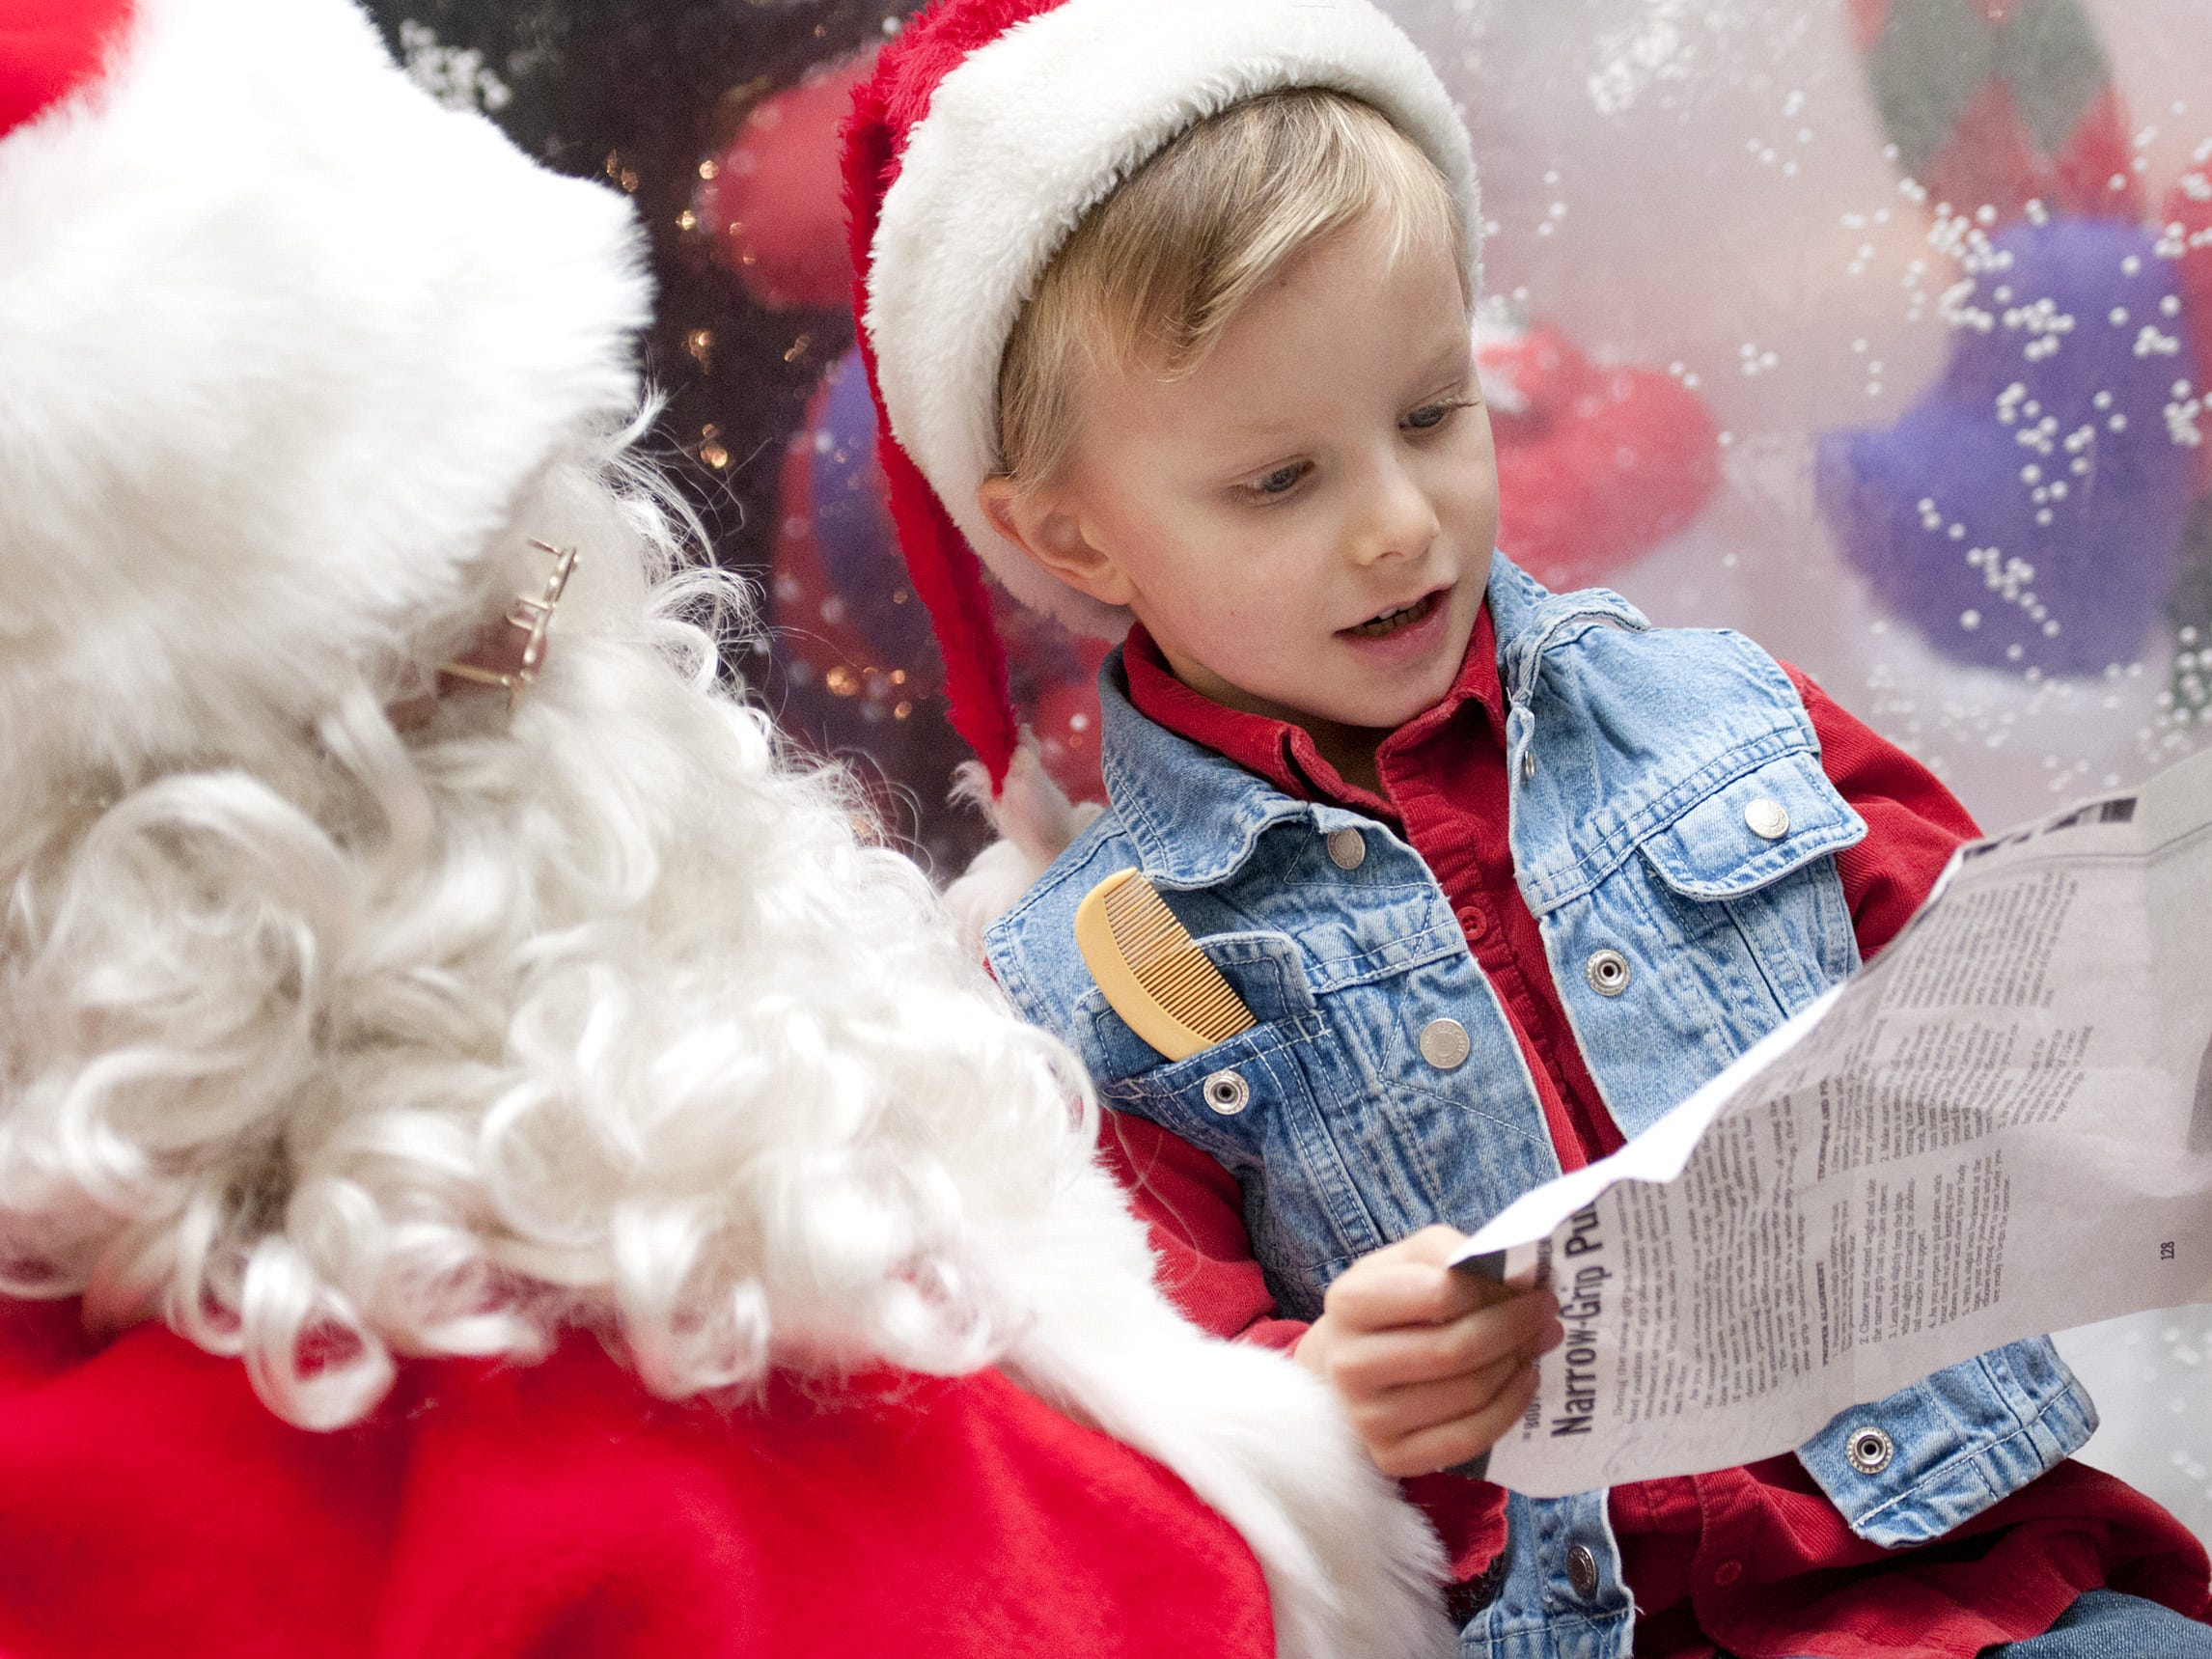 Auggie Doria, 6, from Ithaca, reads Santa his wish list for Christmas in 2012 at the Downtown Winter Festival in Ithaca.